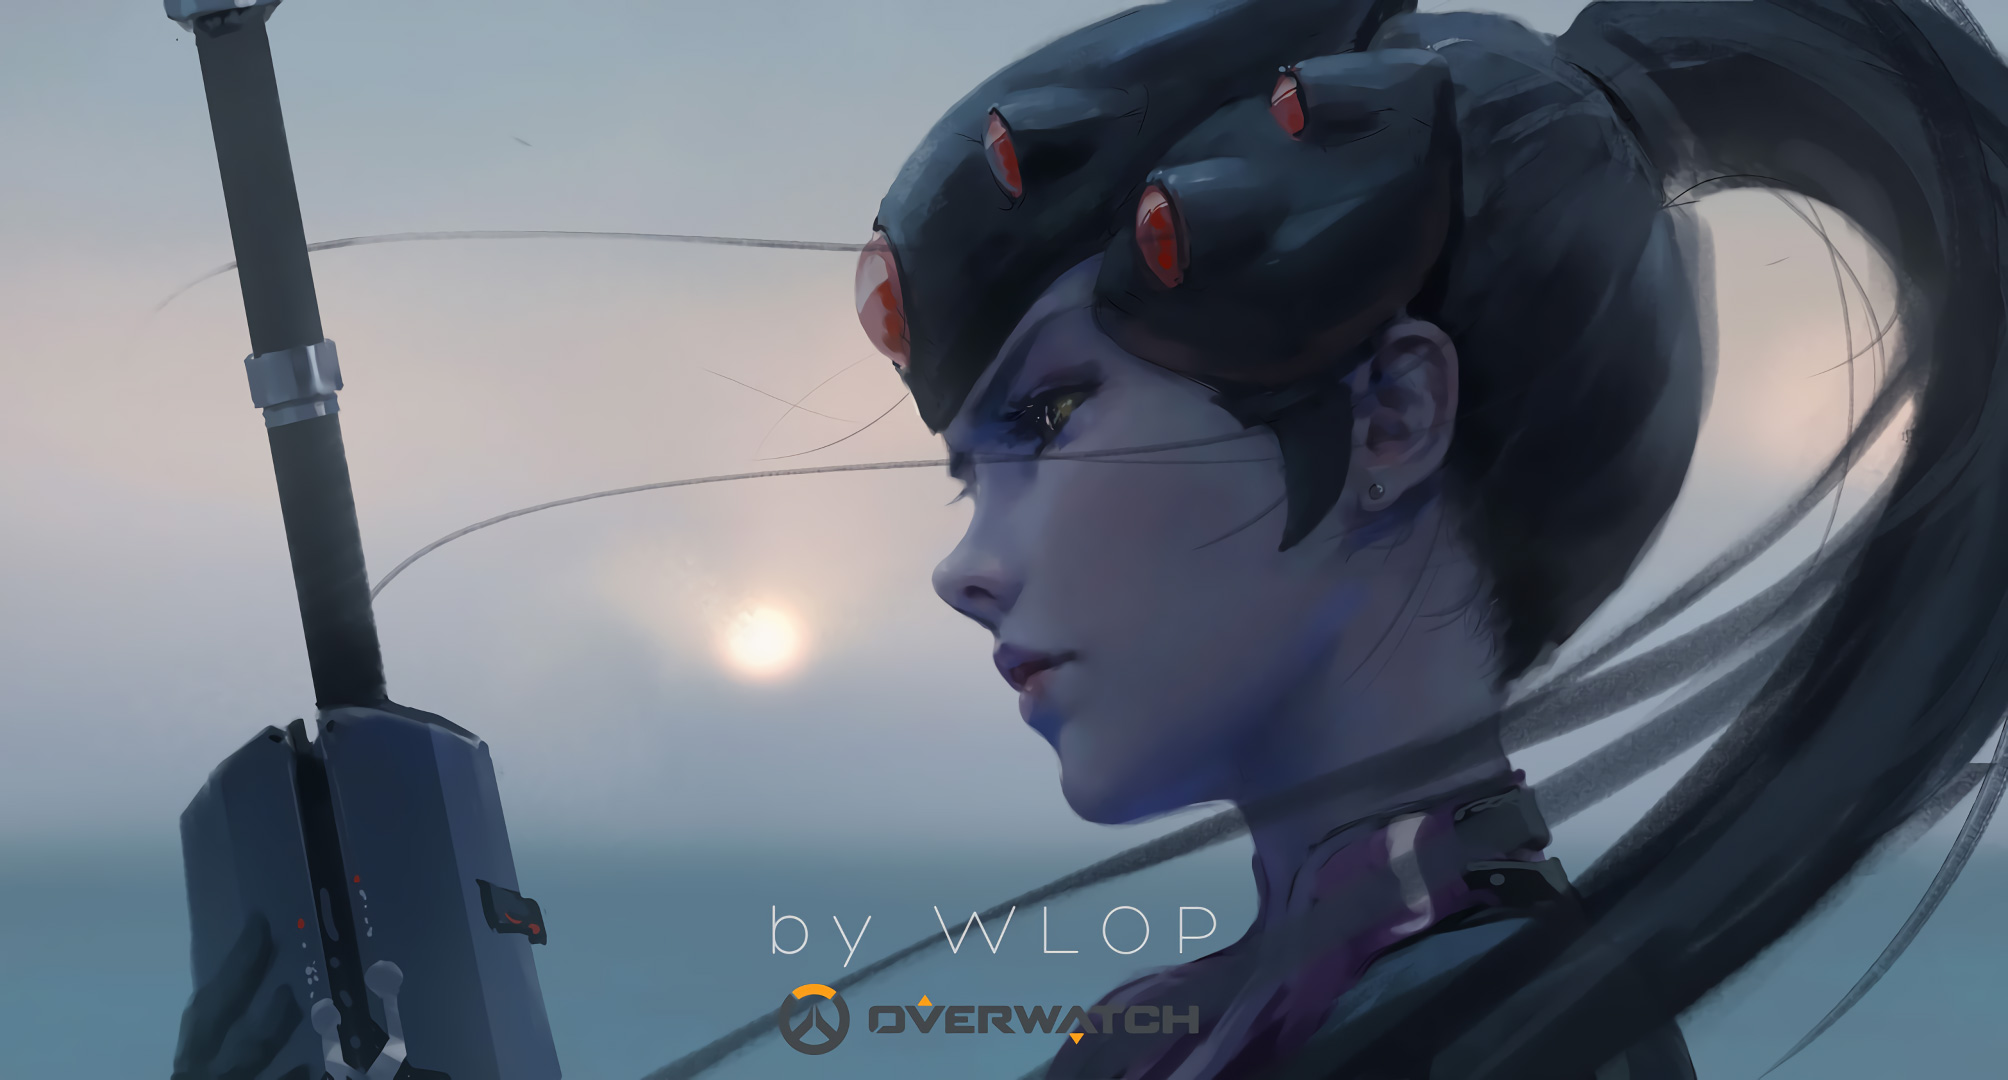 widowmaker overwatch wallpaper 1920x1080 - photo #27